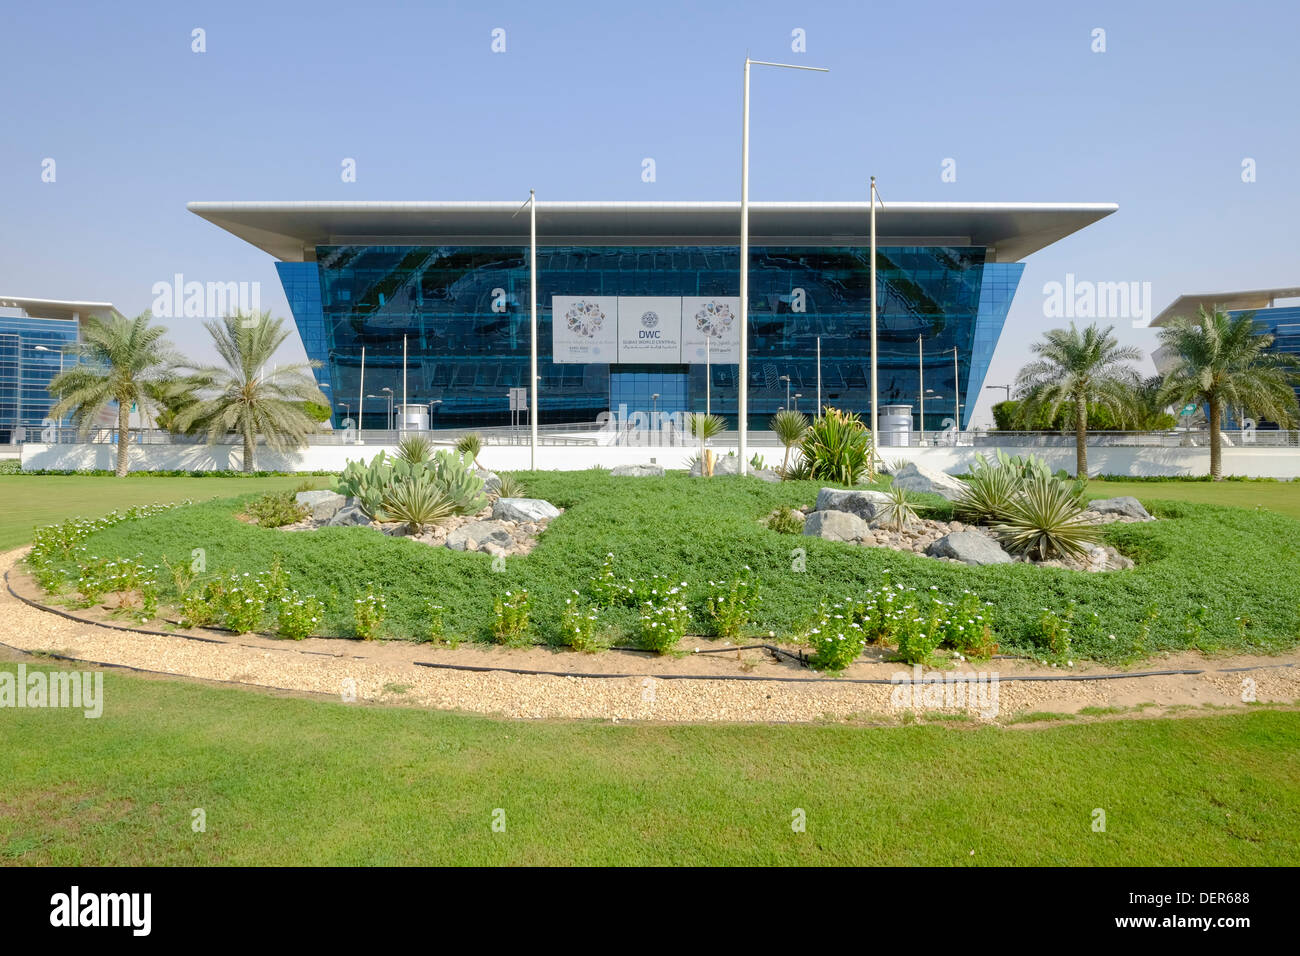 Modern office buildings at Dubai World Central logistics hub in Jebel Ali Dubai United Arab Emirates - Stock Image